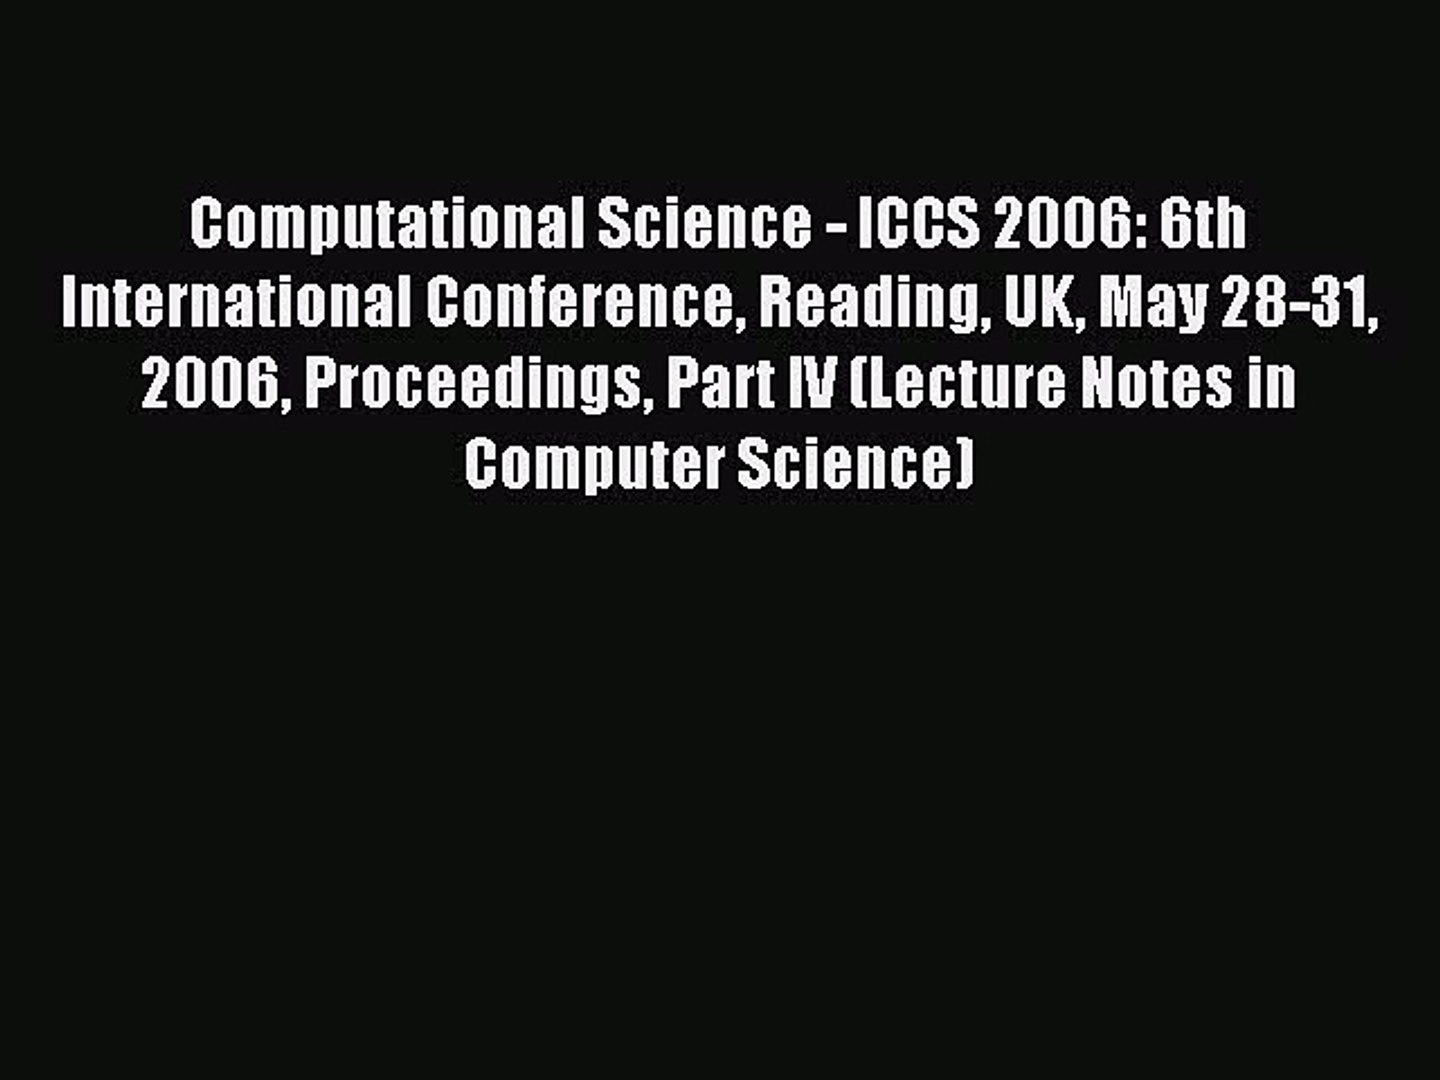 Read Computational Science - ICCS 2006: 6th International Conference Reading UK May 28-31 2006